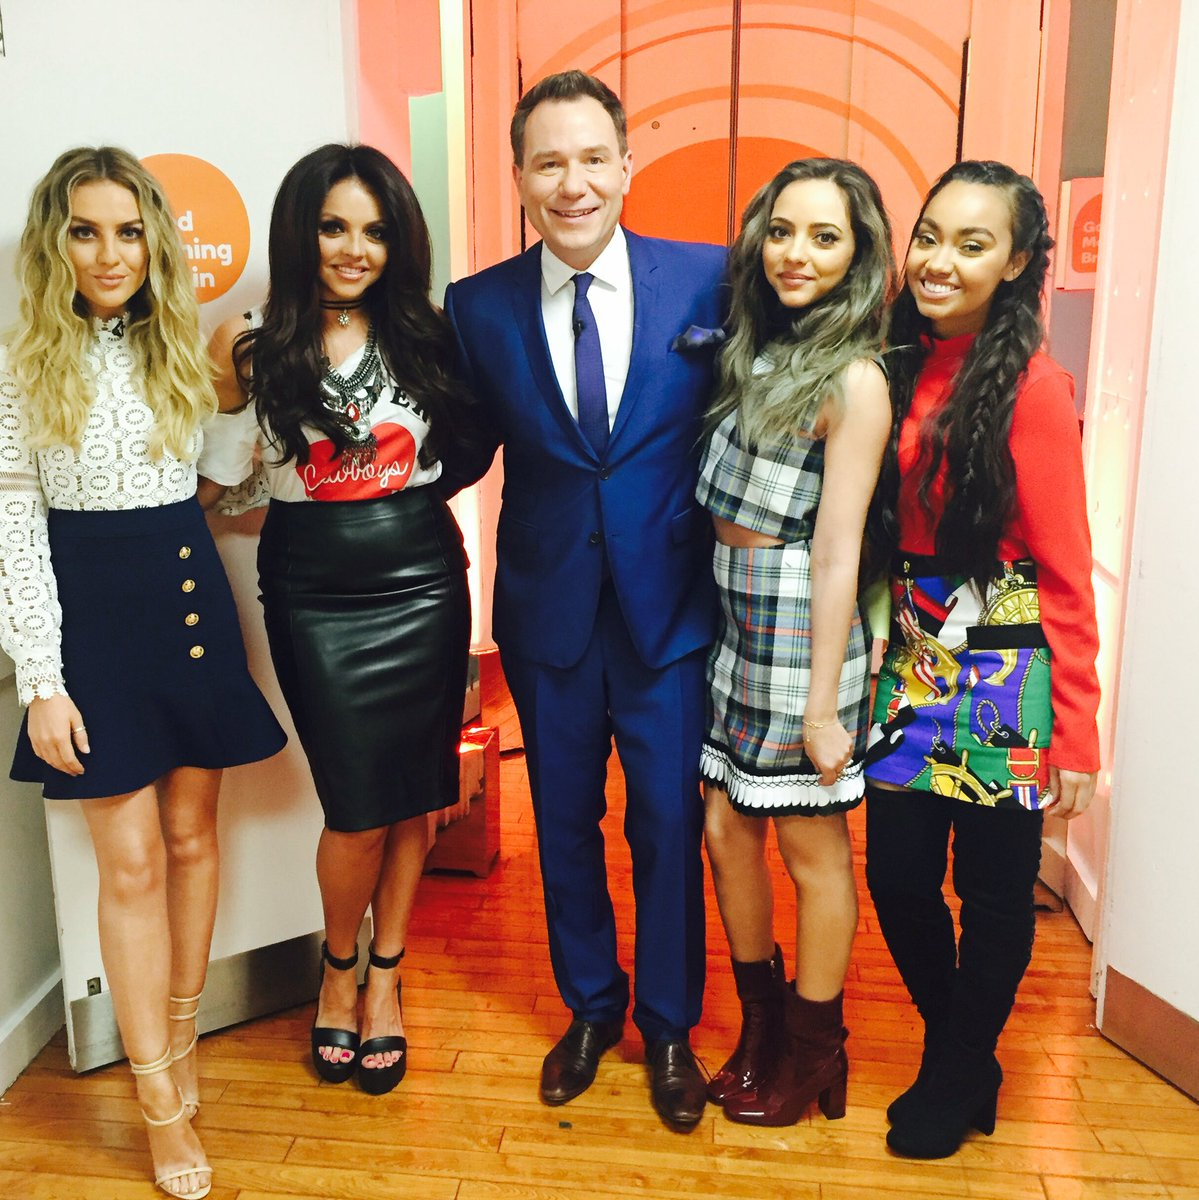 .@LittleMix @GMB catch the chat with @benshephard @susannareid100 at 750 & 820 #PancakeDay #GetWeirdTour #LittleMix https://t.co/INtwNKXnGV